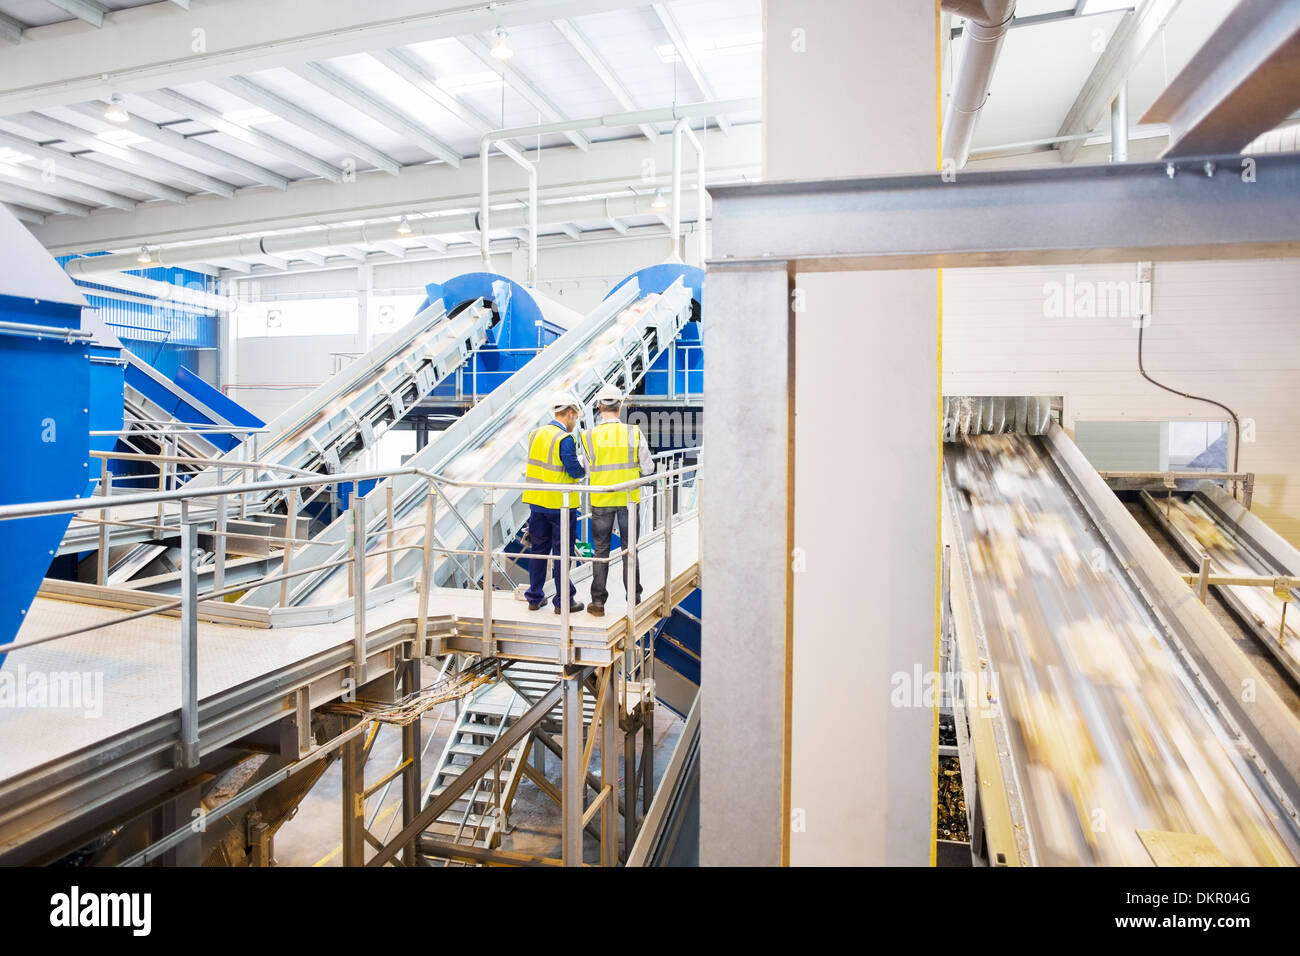 Workers talking on platform in recycling center - Stock Image